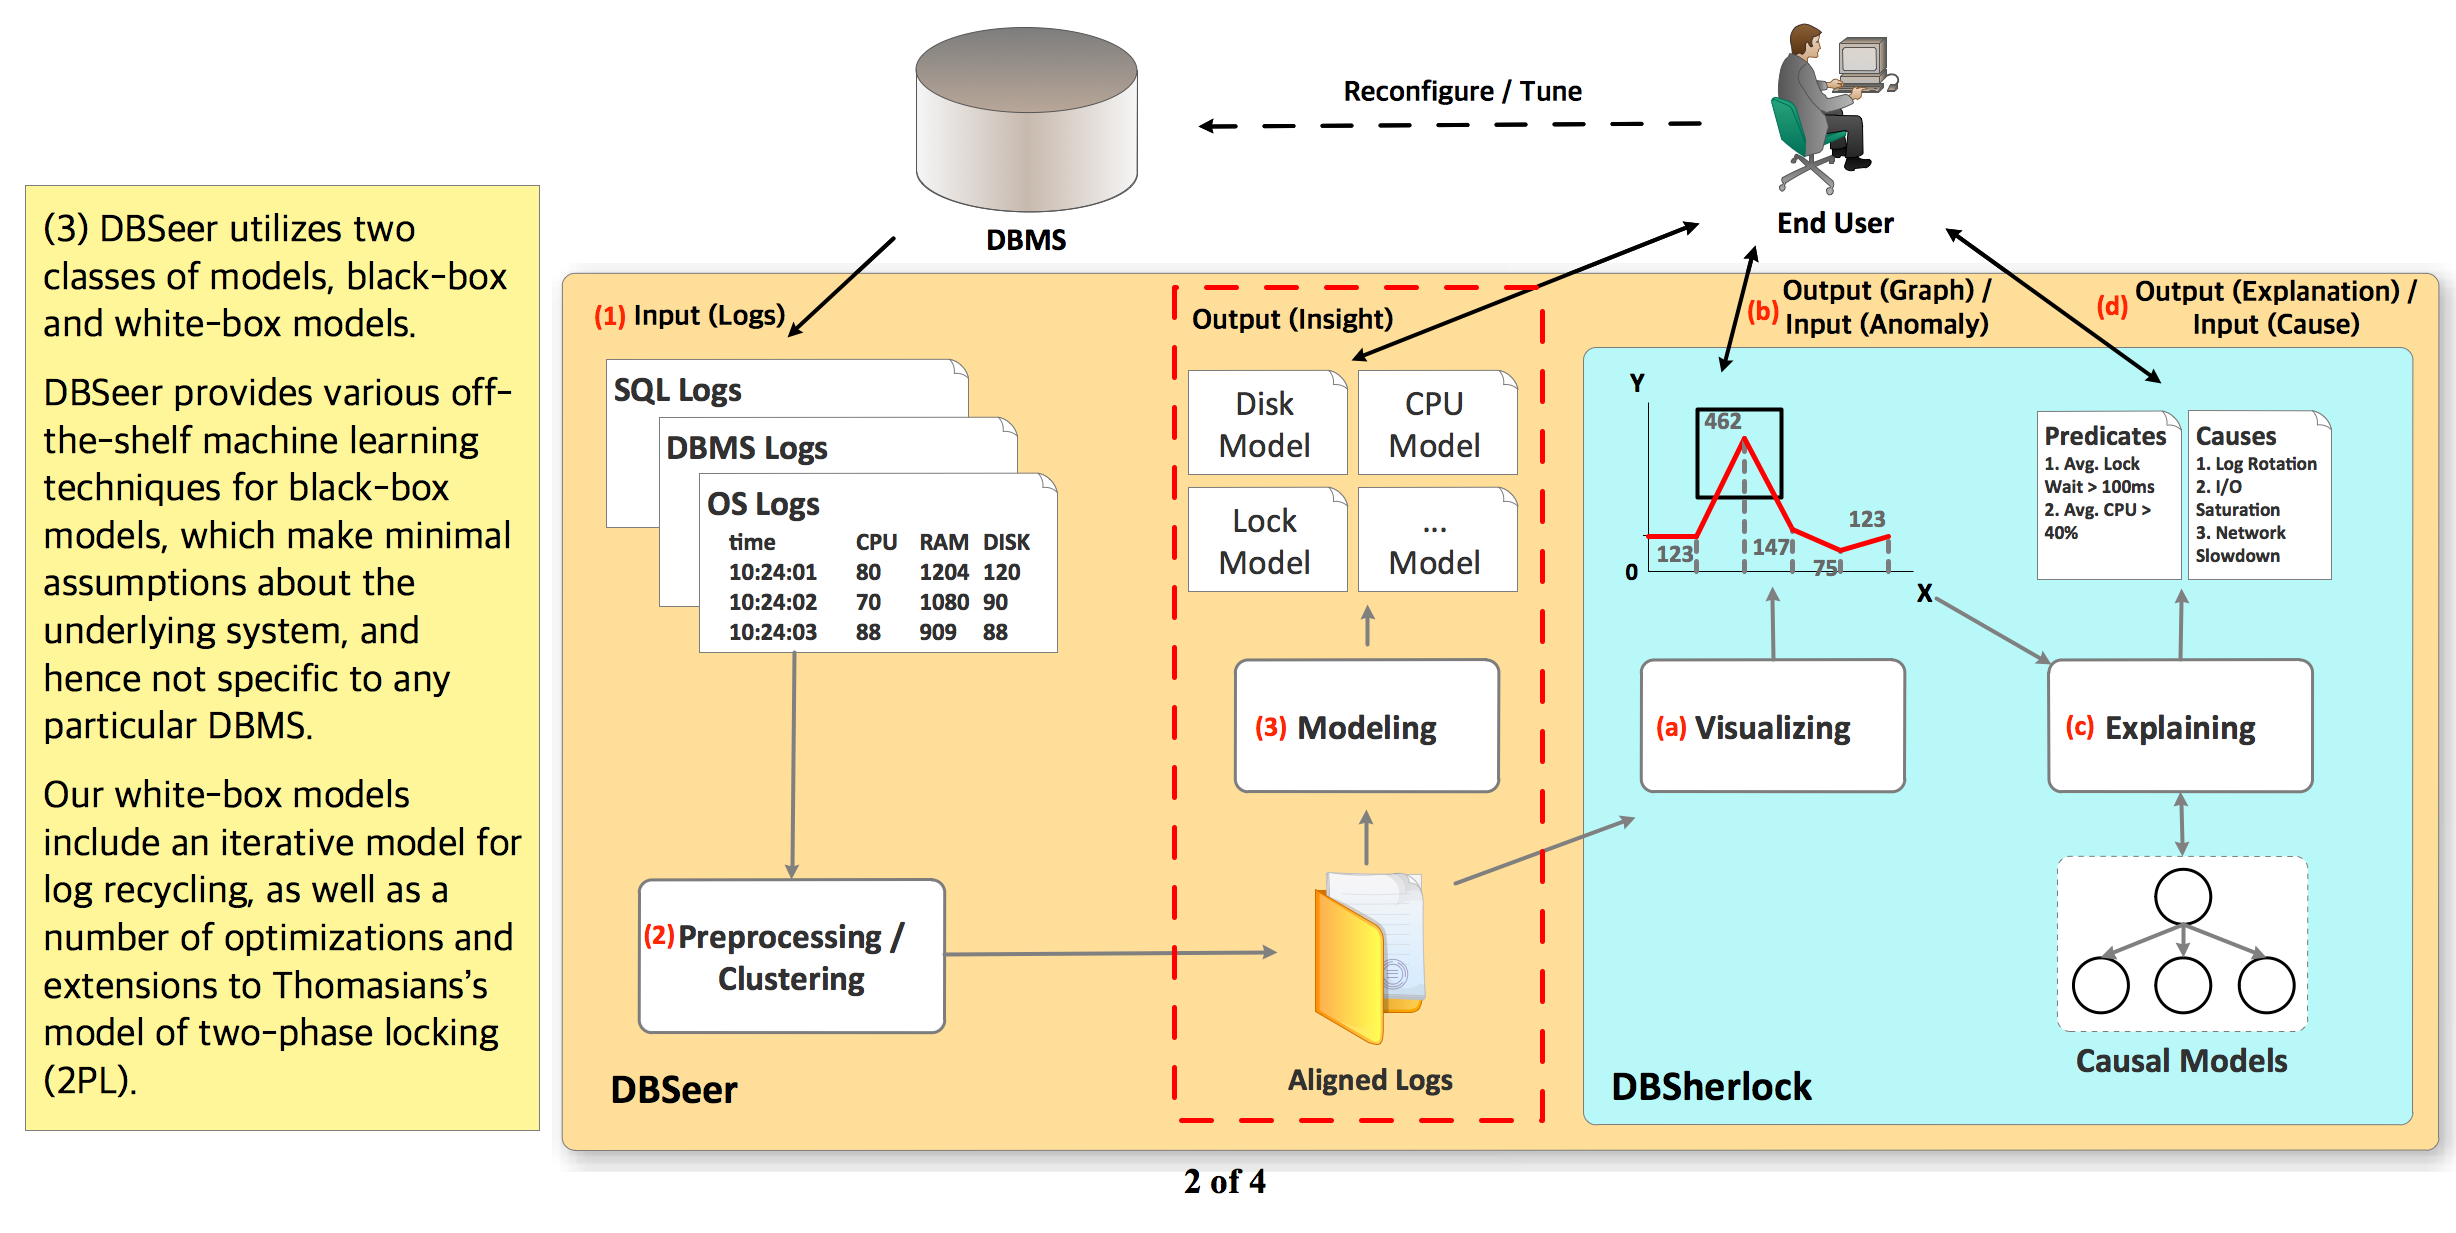 DBSeer utilizes two classes of models, black-box and white-box models, utilizing machine learning techniques and extentions to Thomasian's model of two-phase locking